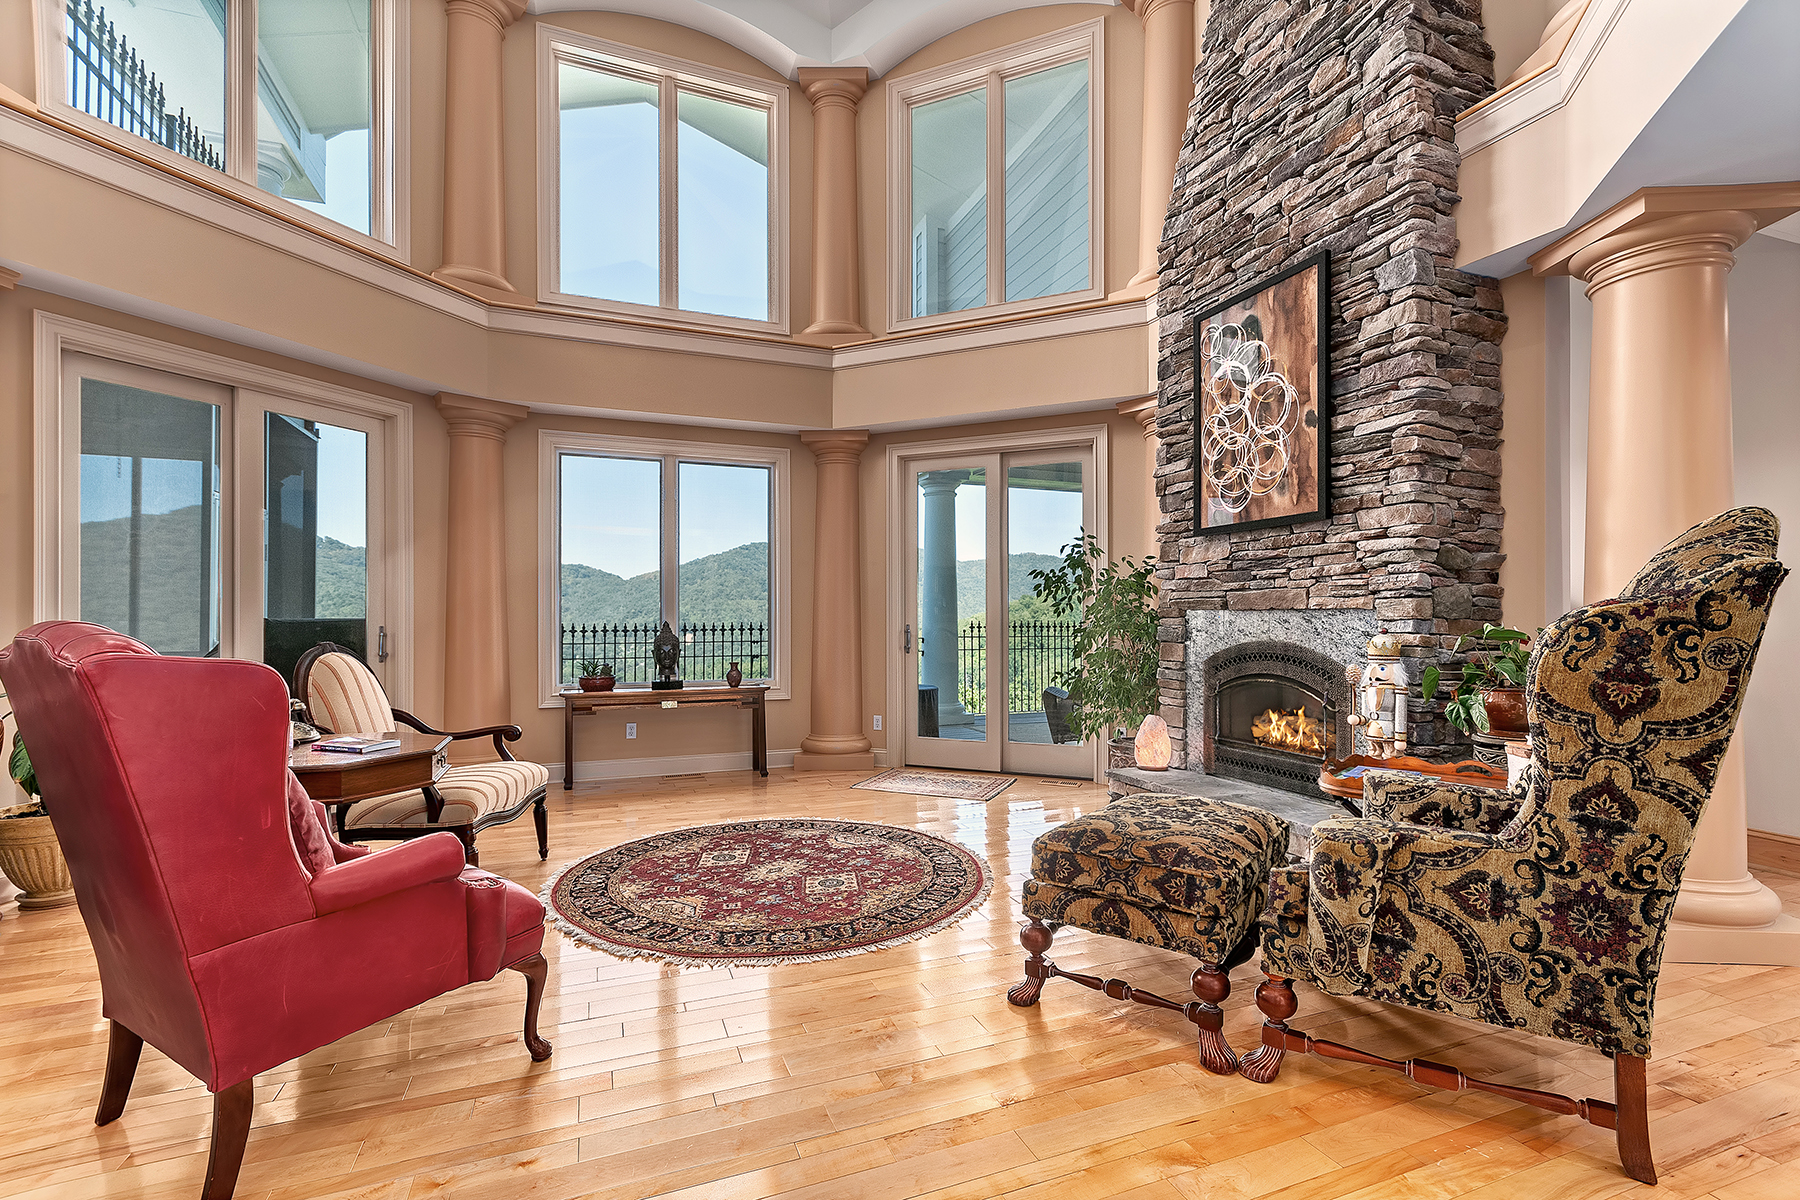 Single Family Home for Sale at 316 Mountain Laurel , Asheville, NC 28805 316 Mountain Laurel Asheville, North Carolina, 28805 United States